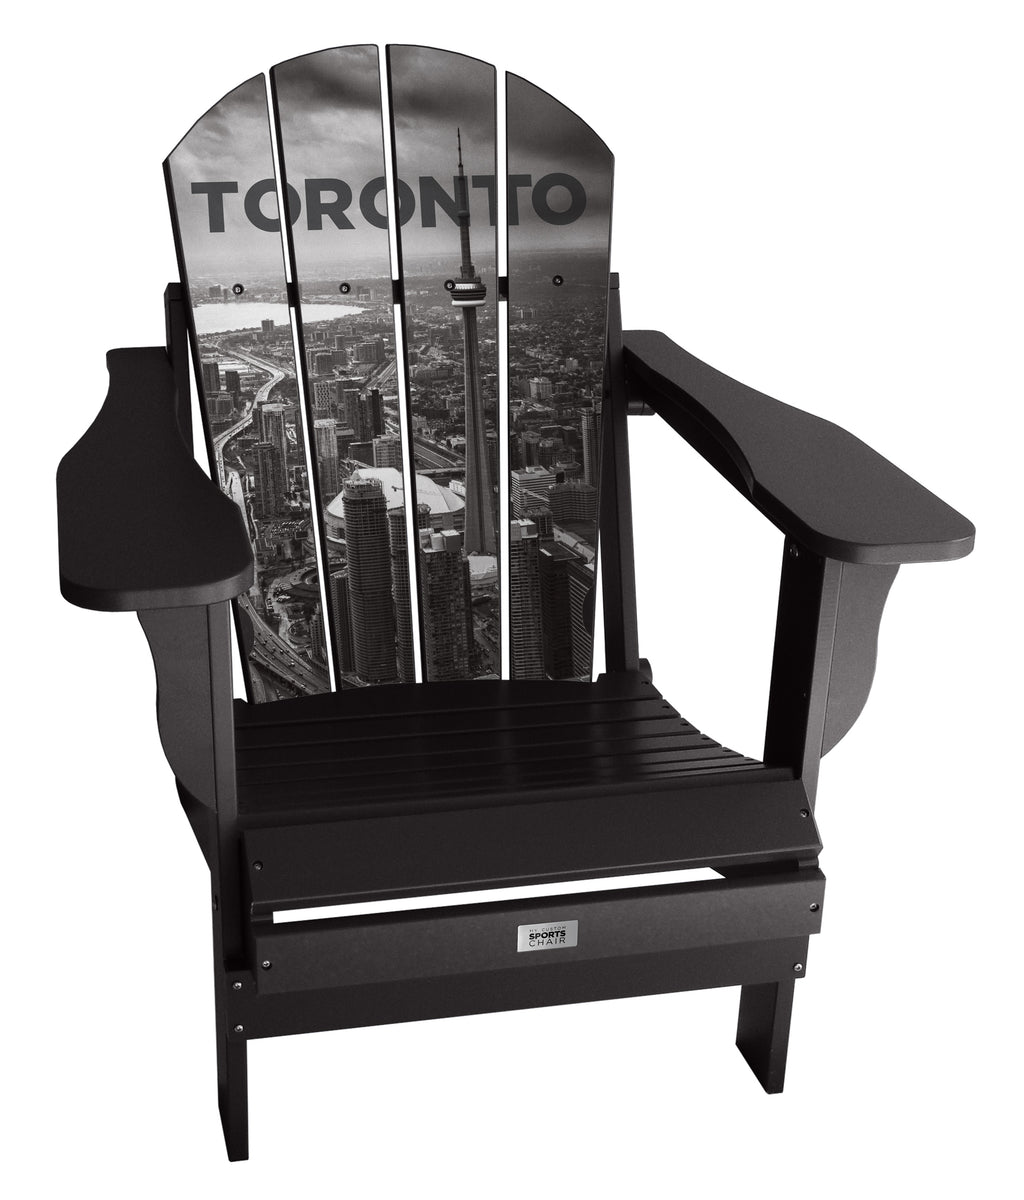 Toronto City Lifestyle Chair